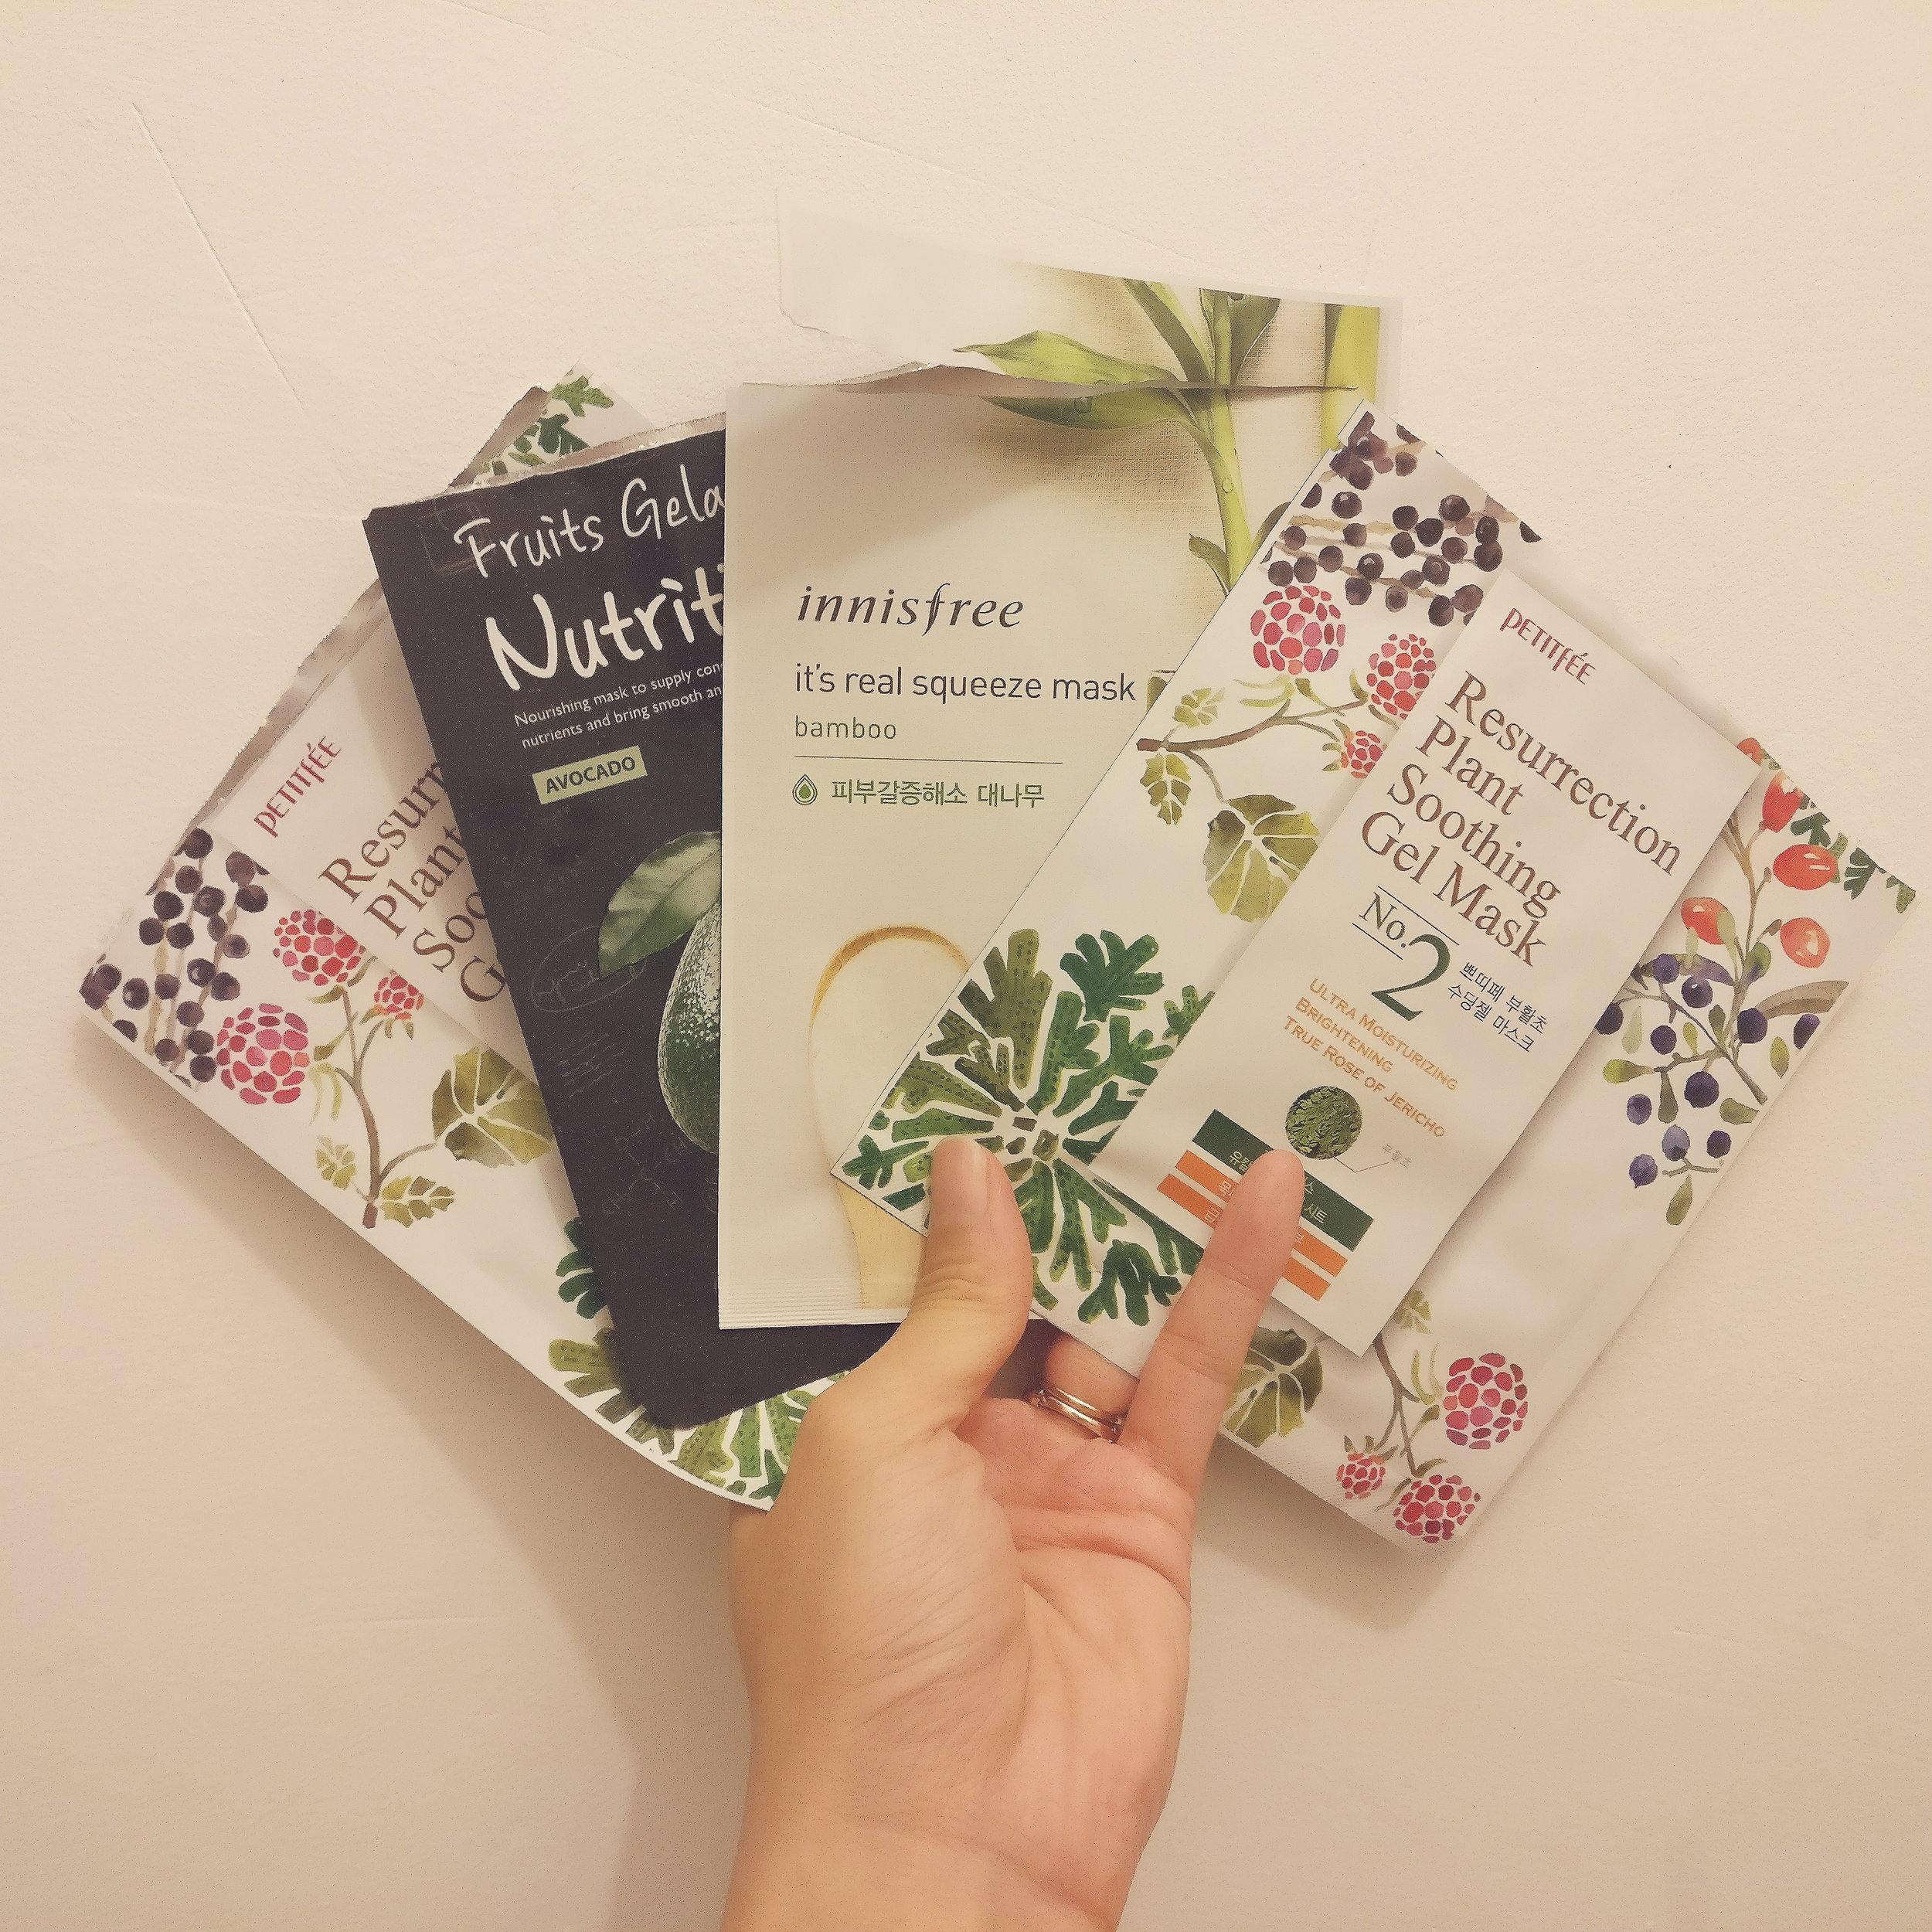 I have an ongoing collection of these packets where I've used the mask and the serum remains